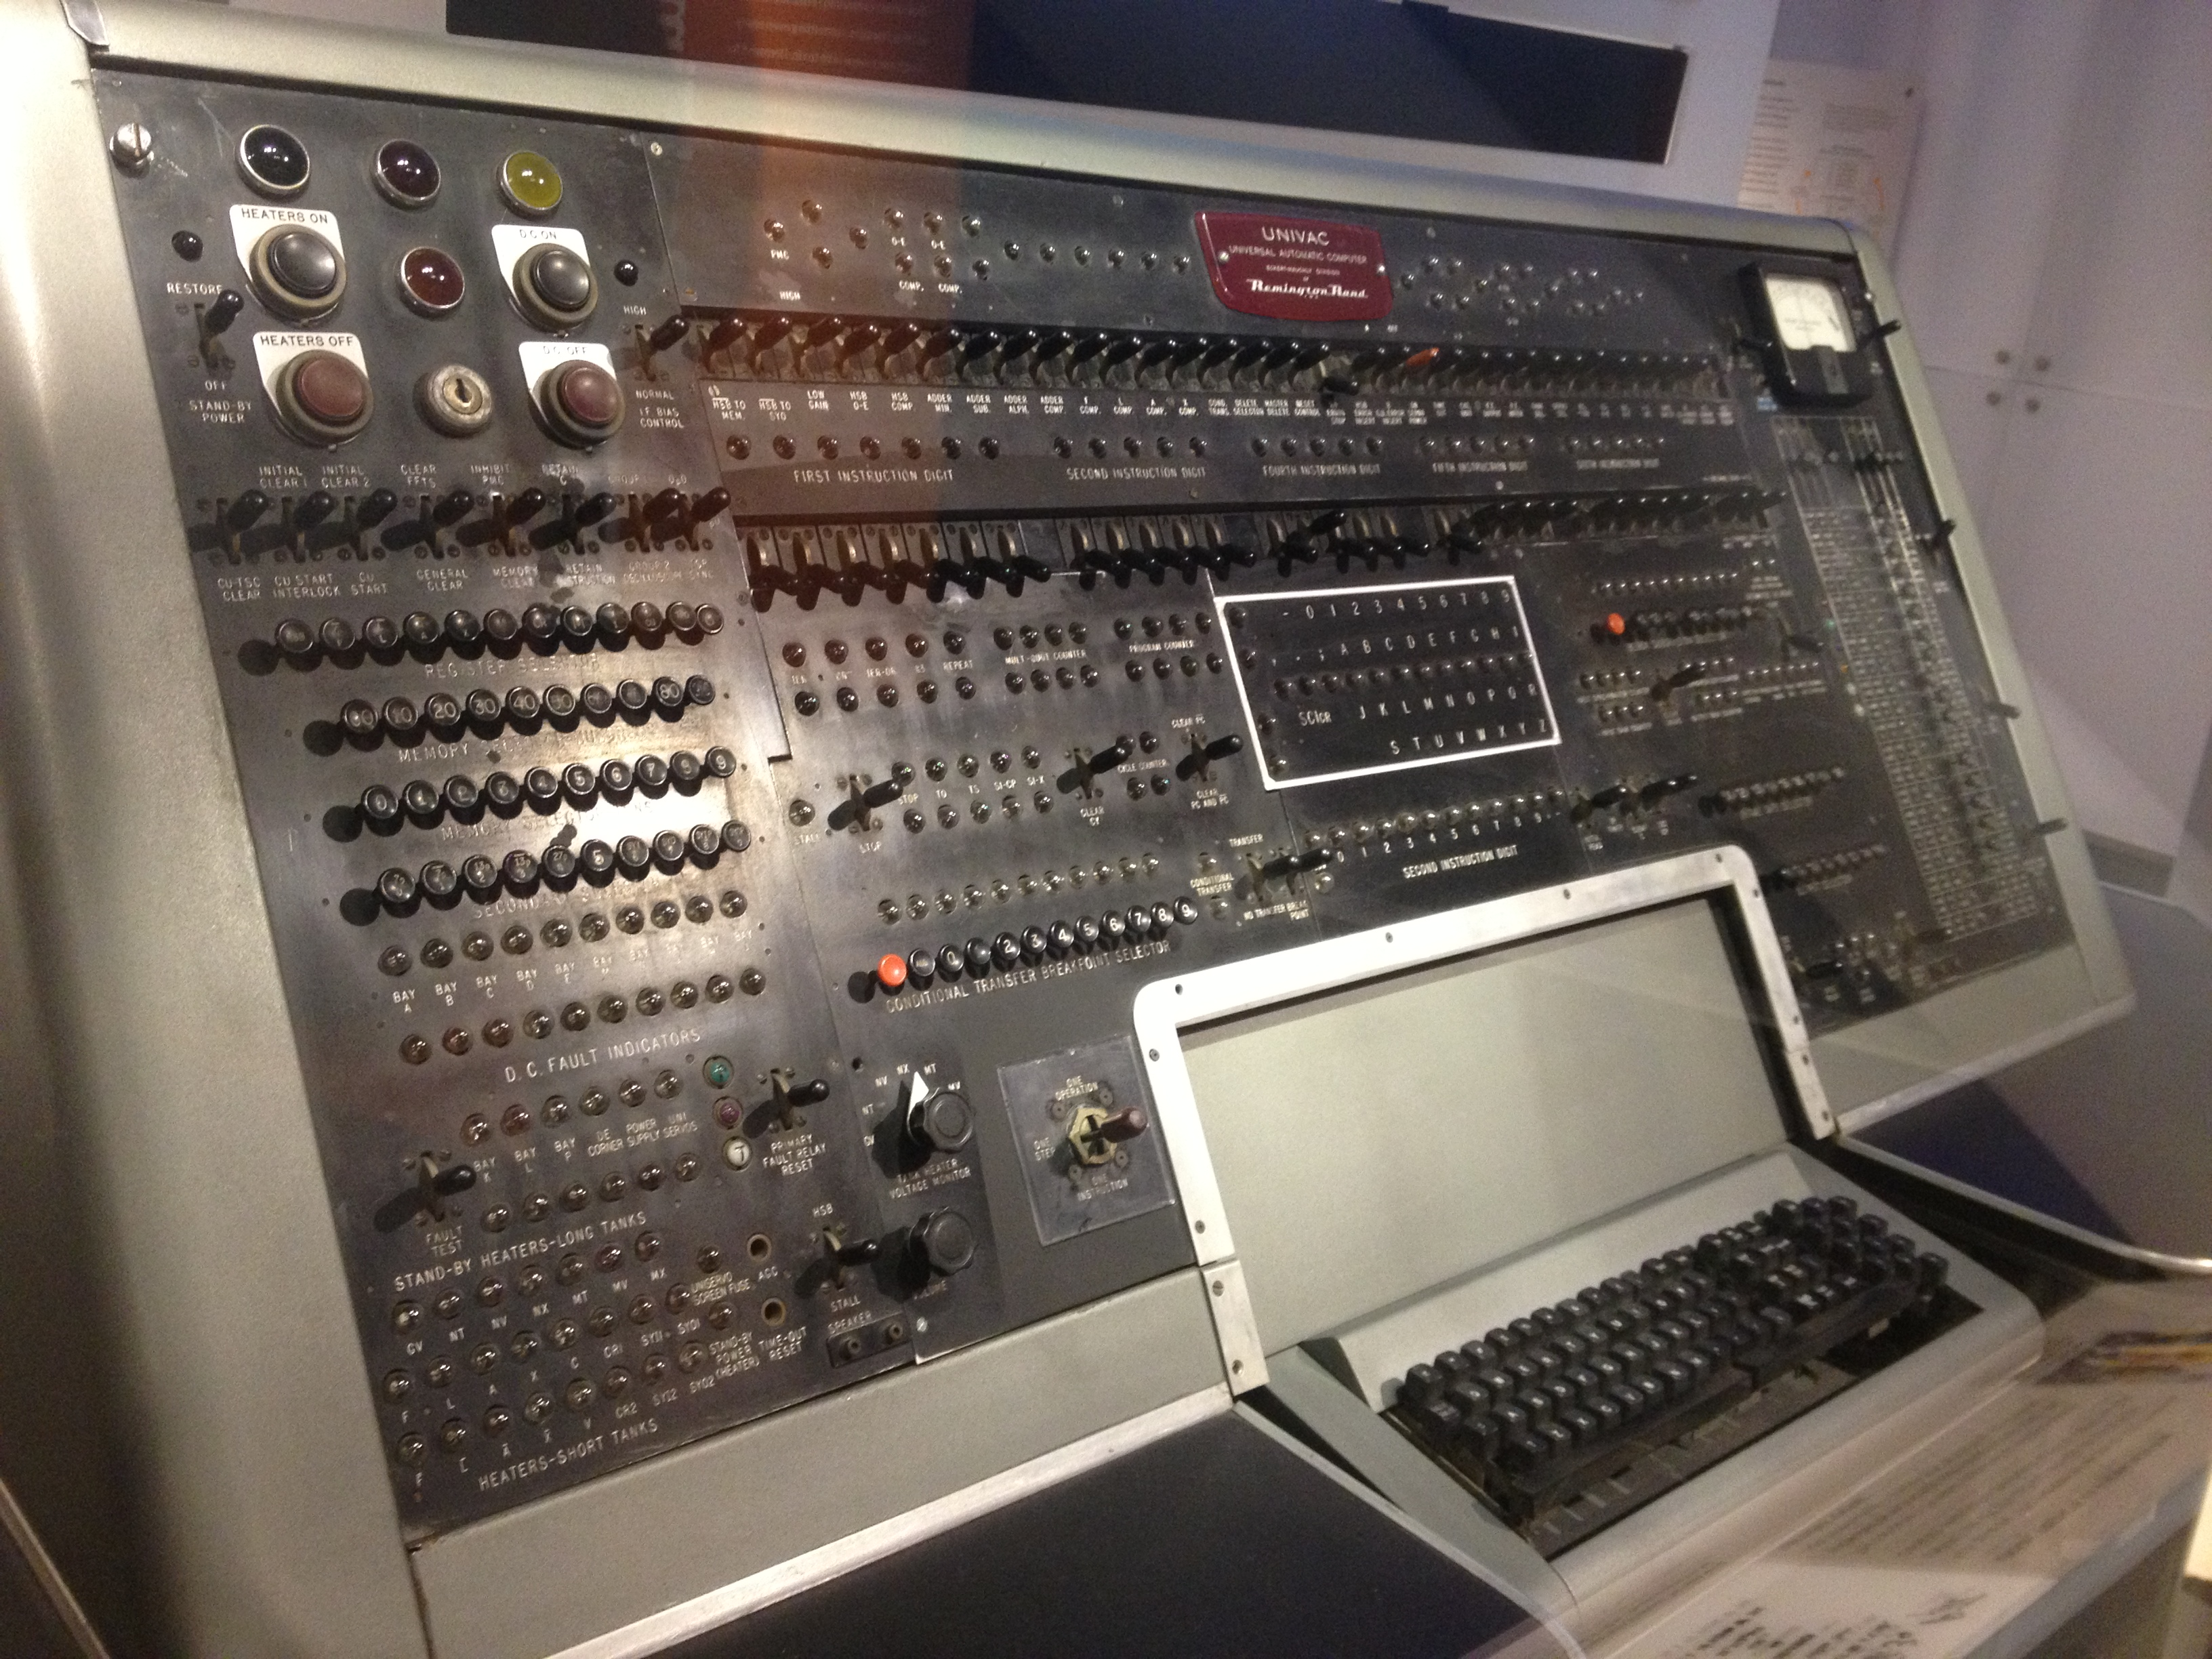 Fileunivac i at chmrg wikimedia commons fileunivac i at chmrg publicscrutiny Choice Image